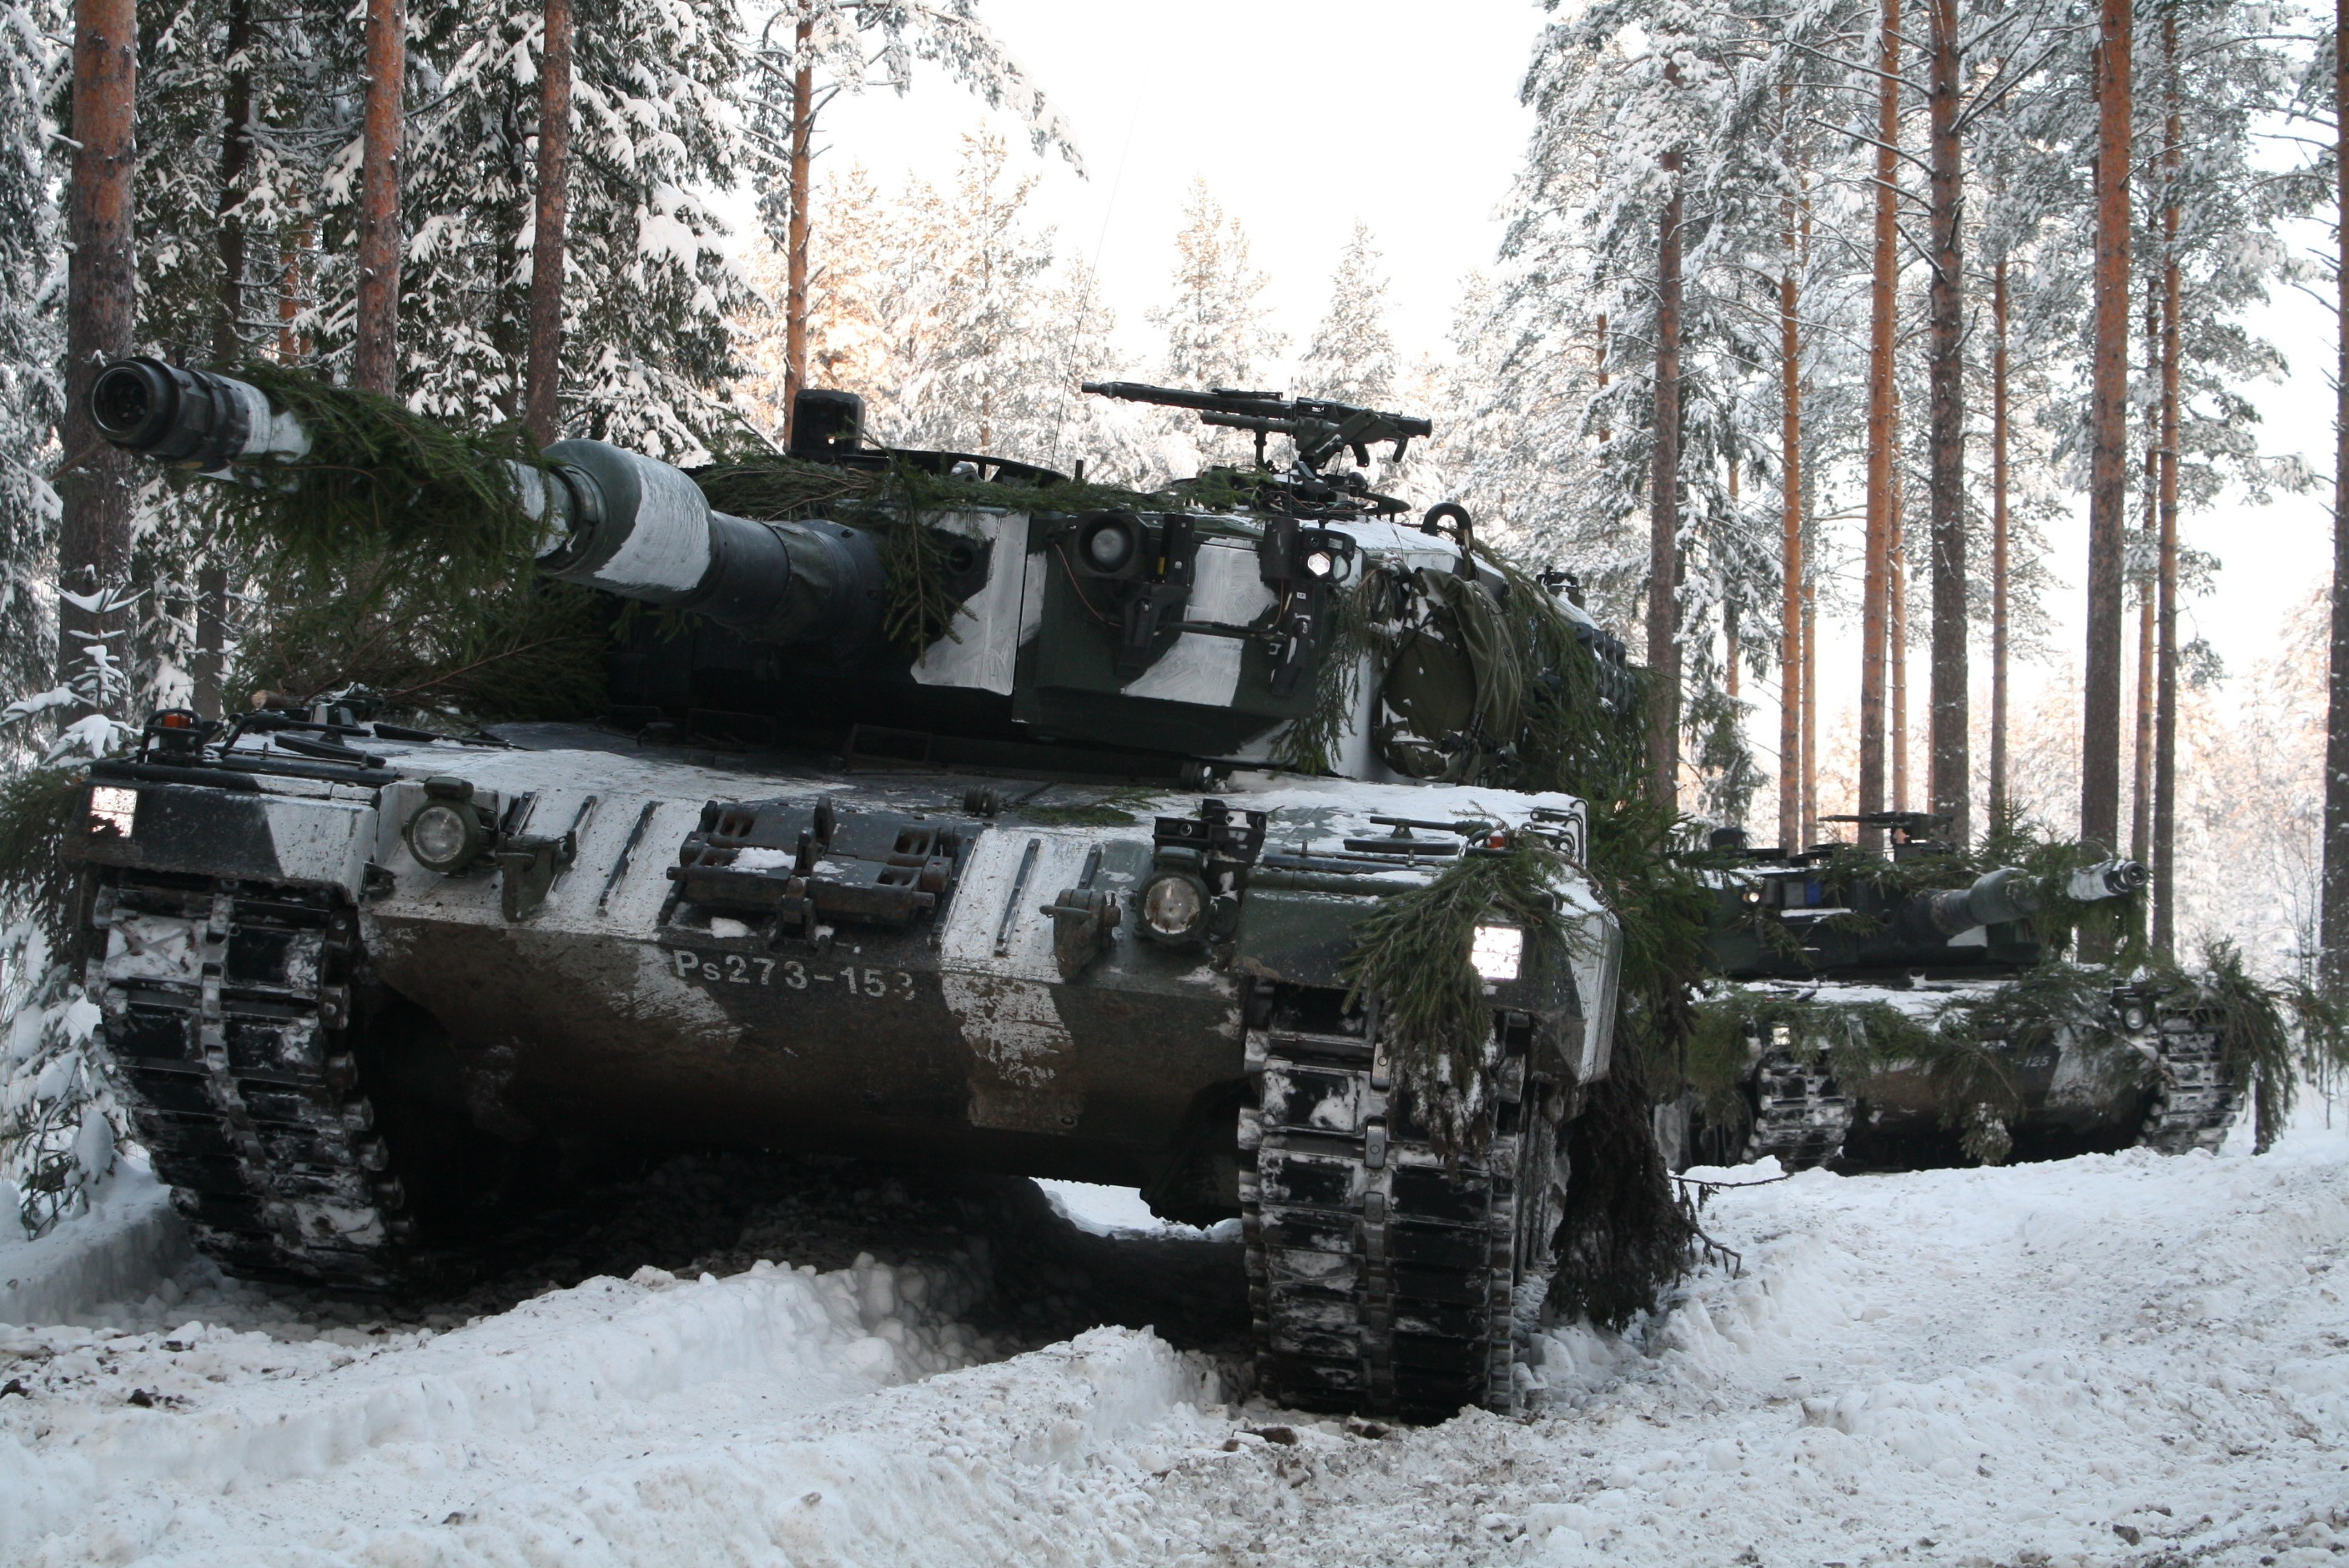 Norway abandons Leopard 2A4 tank upgrade